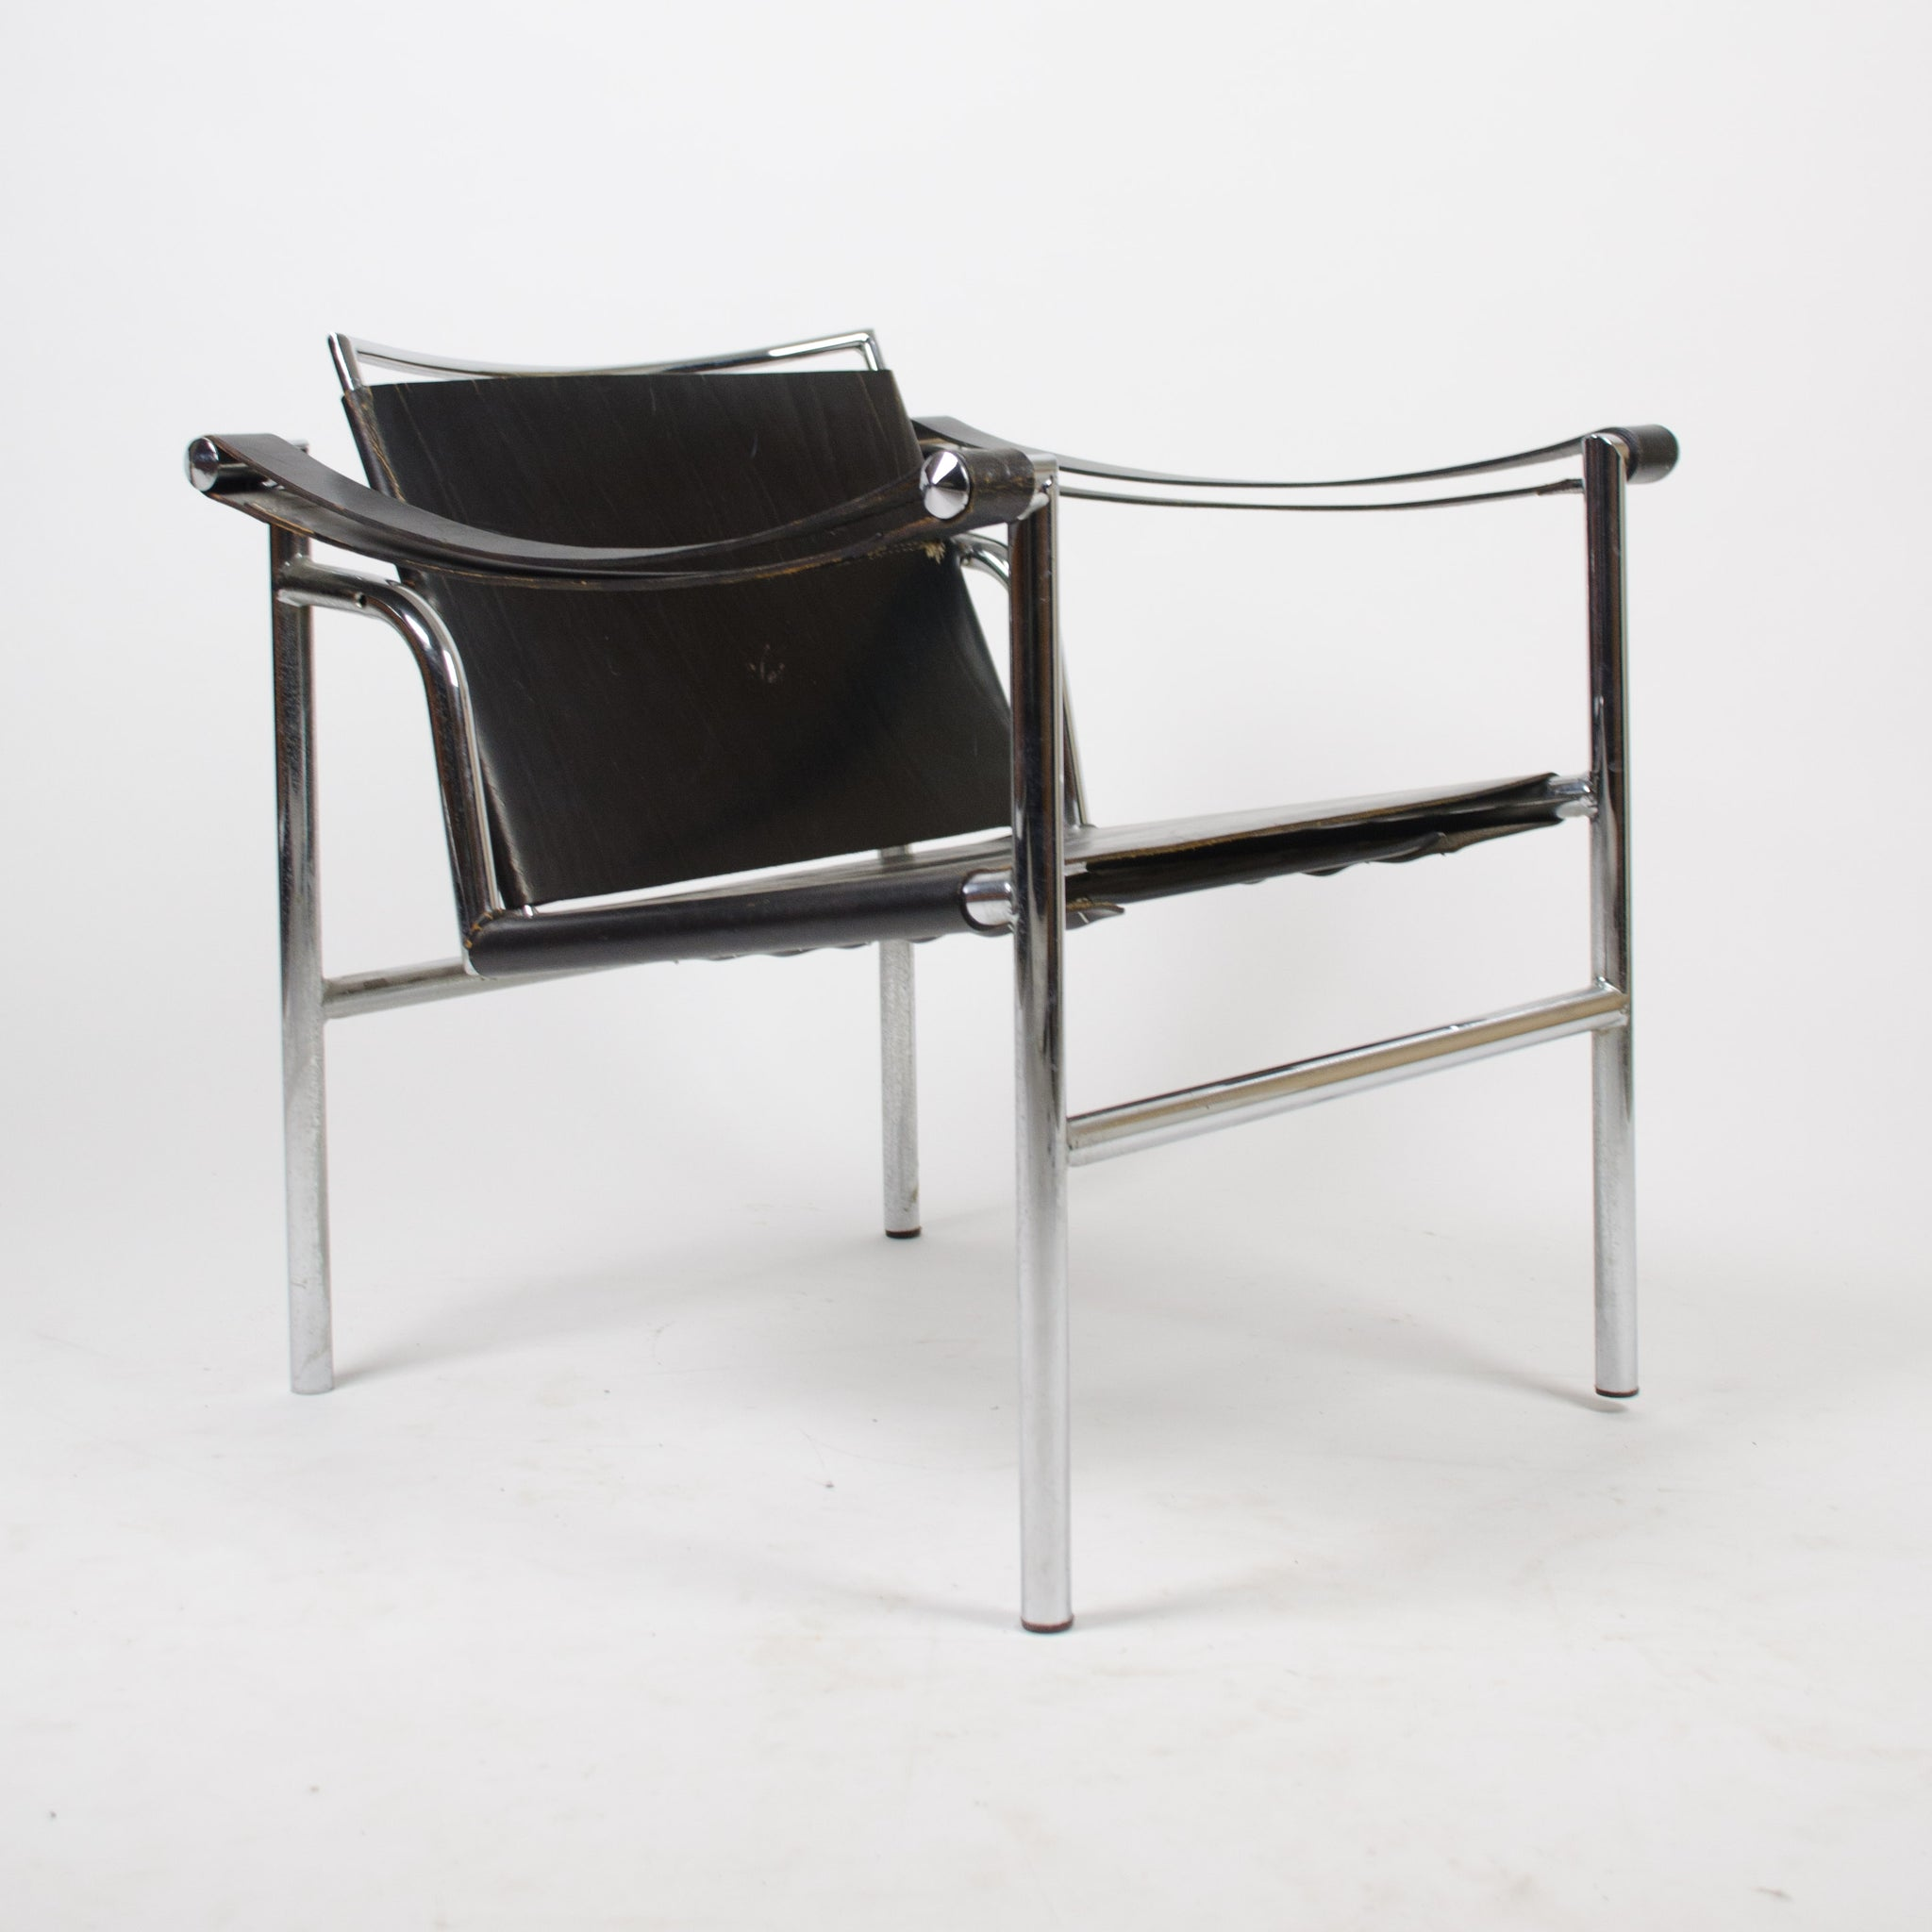 1960's Vintage Pair Le Corbusier LC1 Stendig Basculant Chairs Thonet Cassina